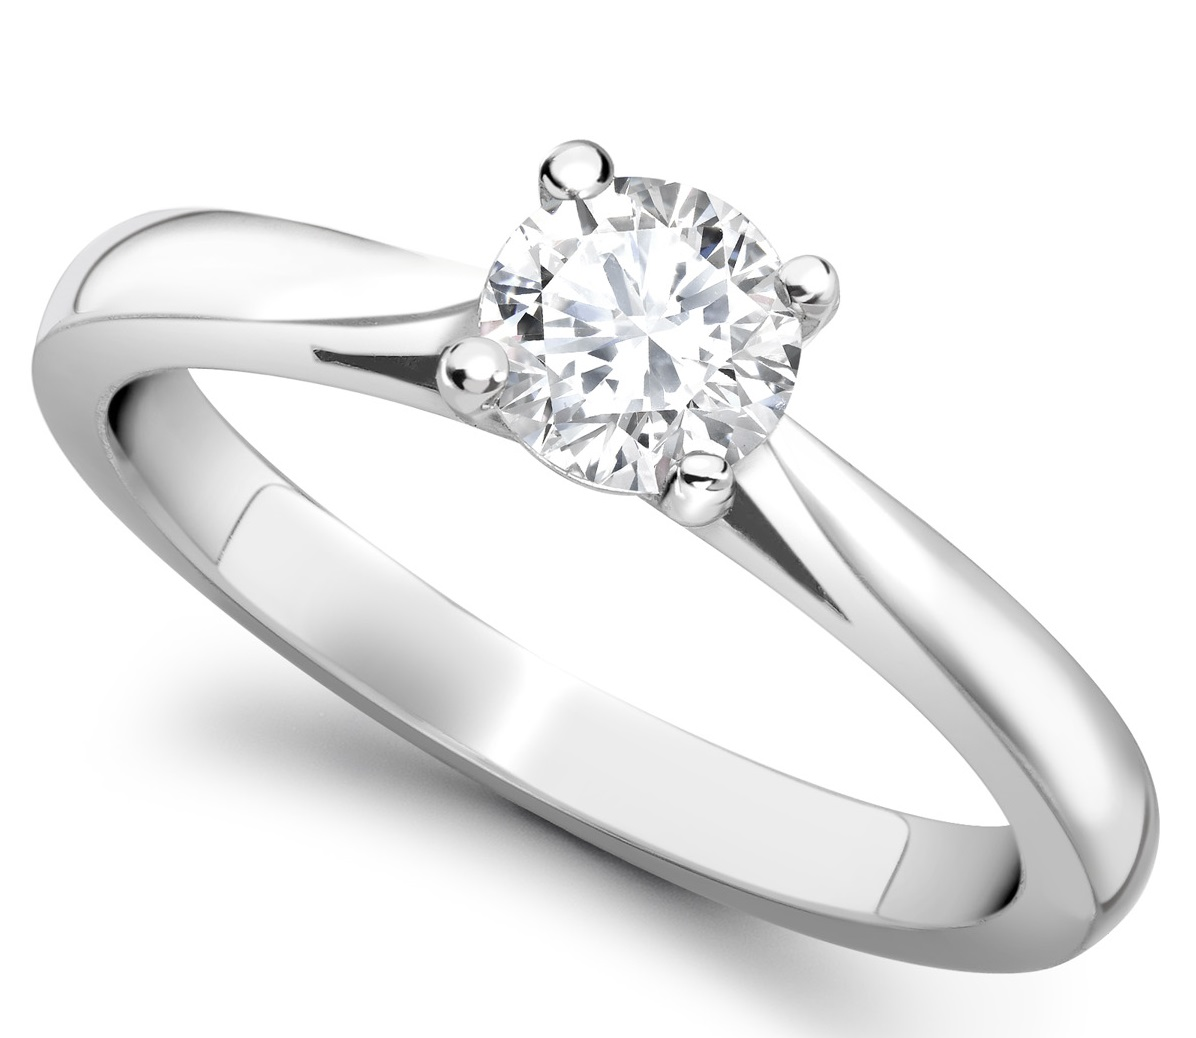 Round 4 Claw Platinum Engagement Ring GRC650PLT Main Image